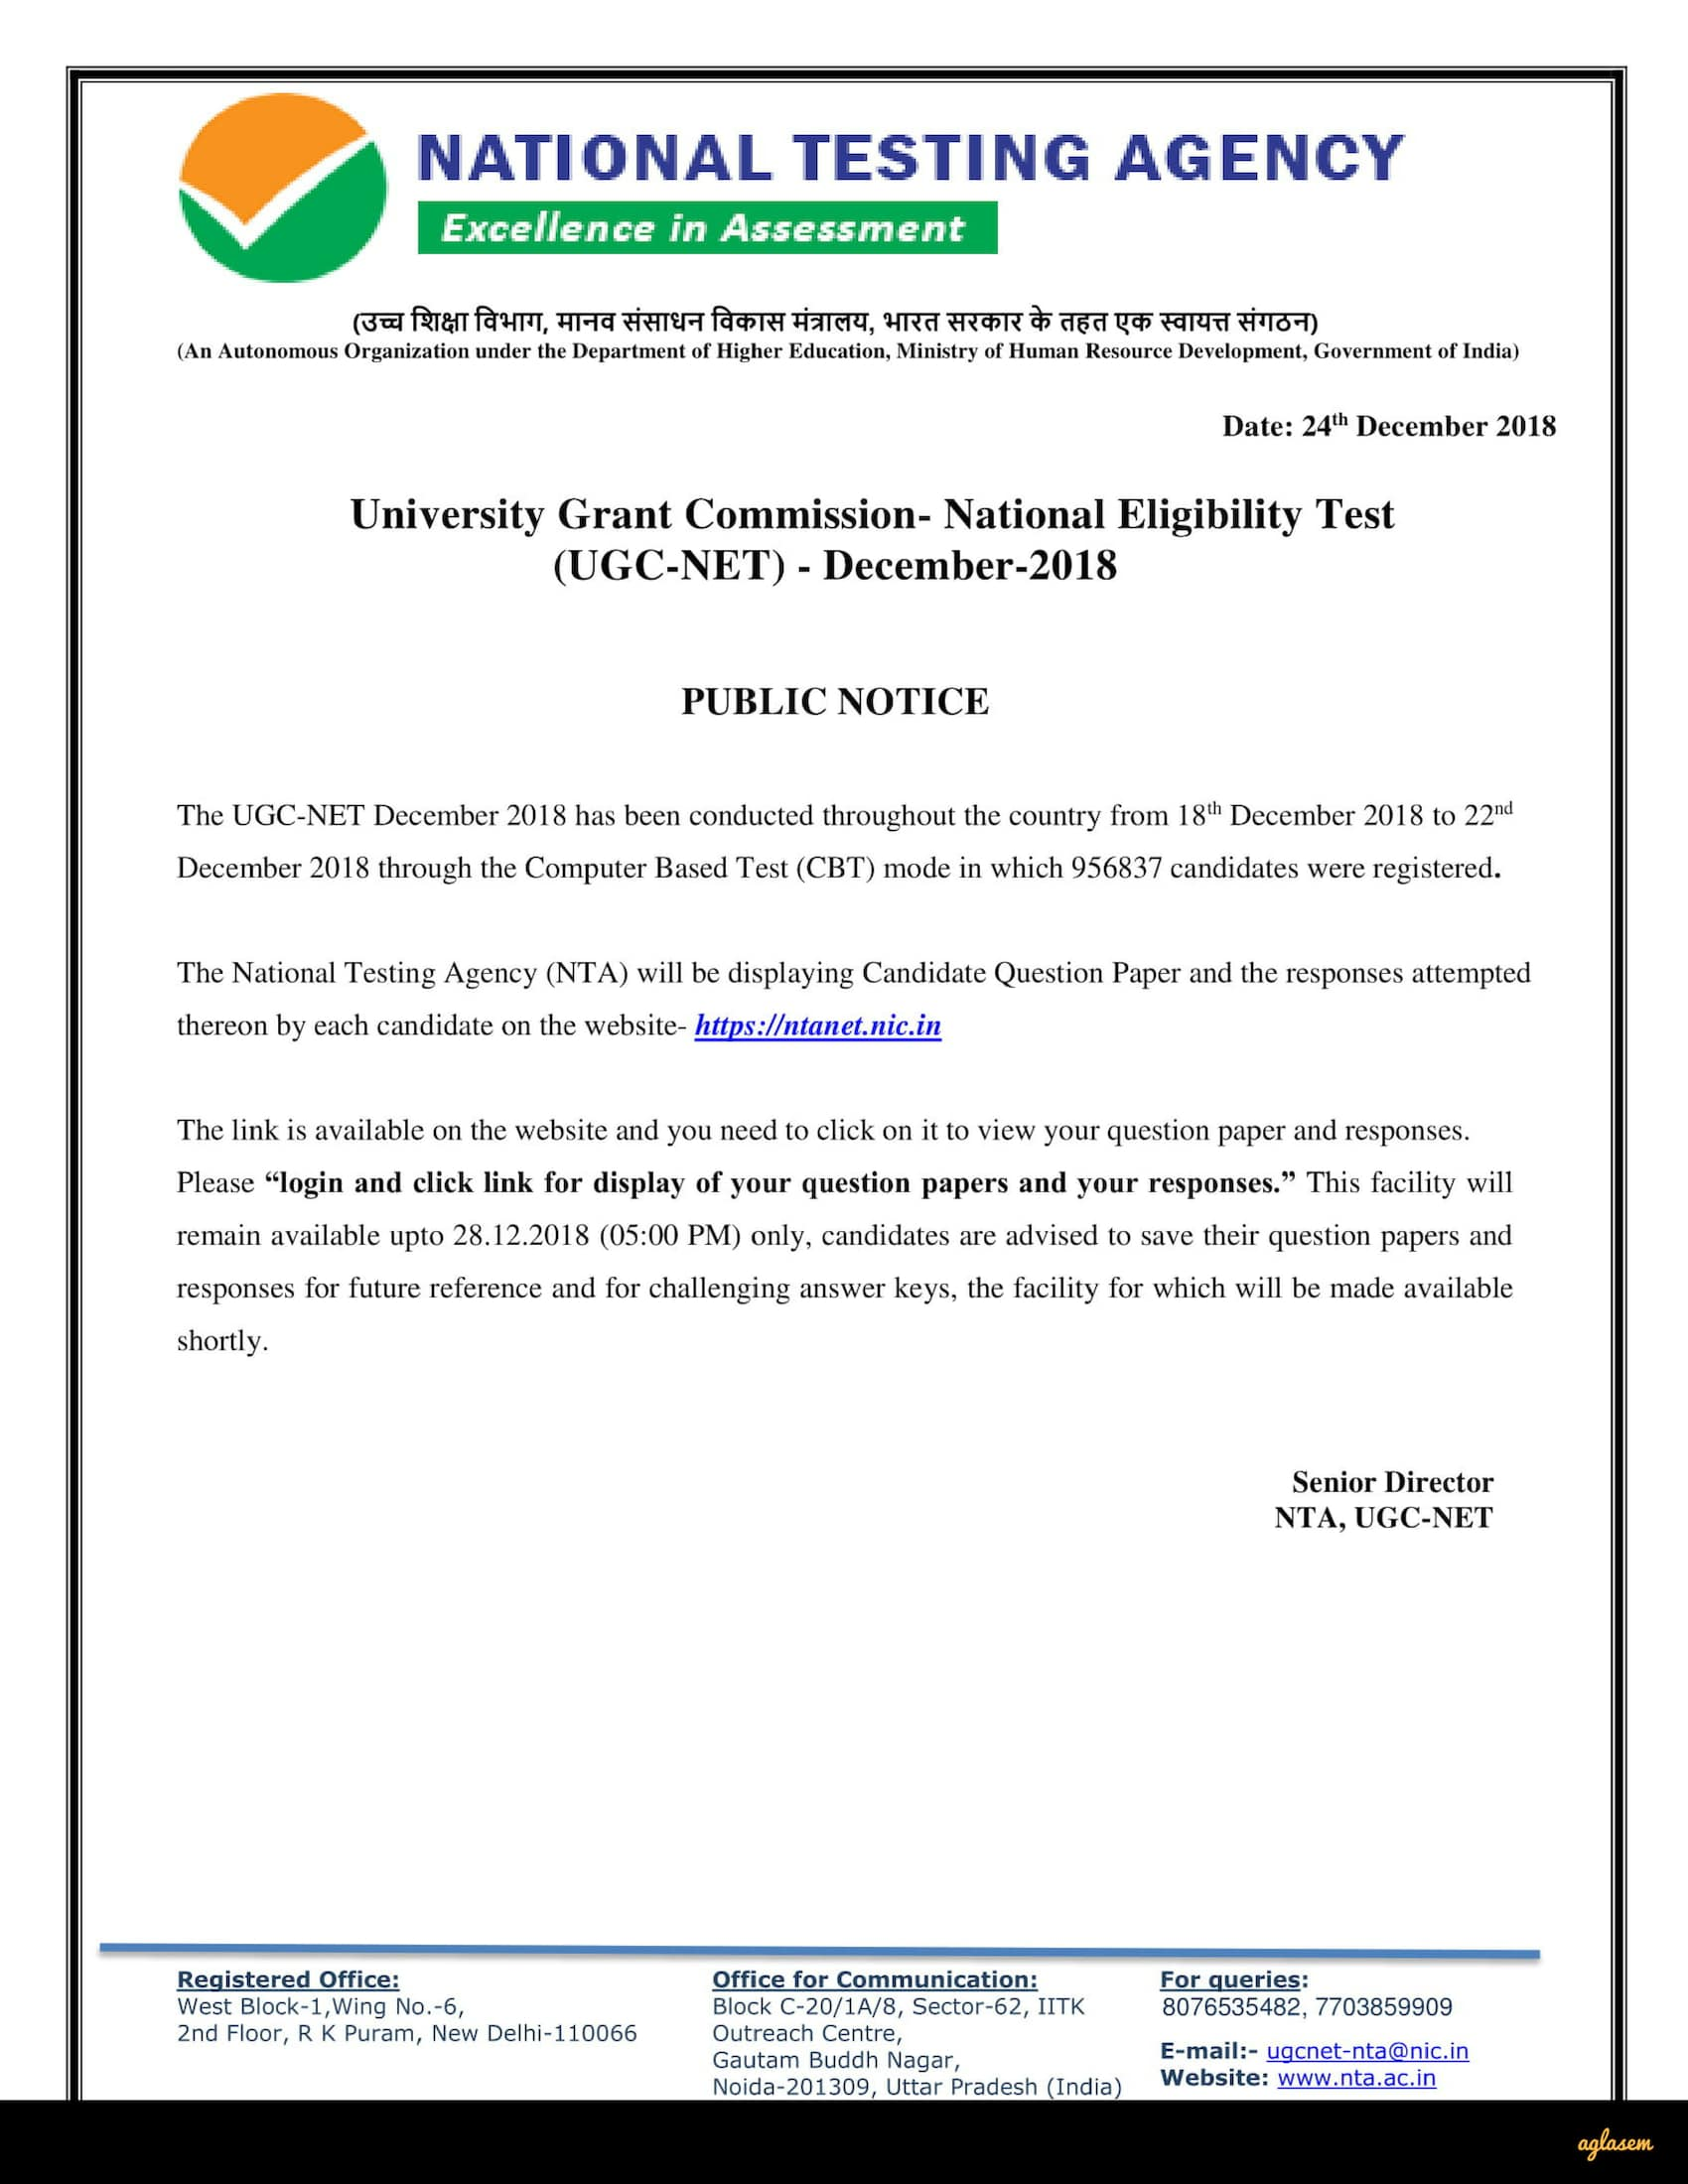 UGC NET Dec 2018 - UGC NET Answer Key, Result